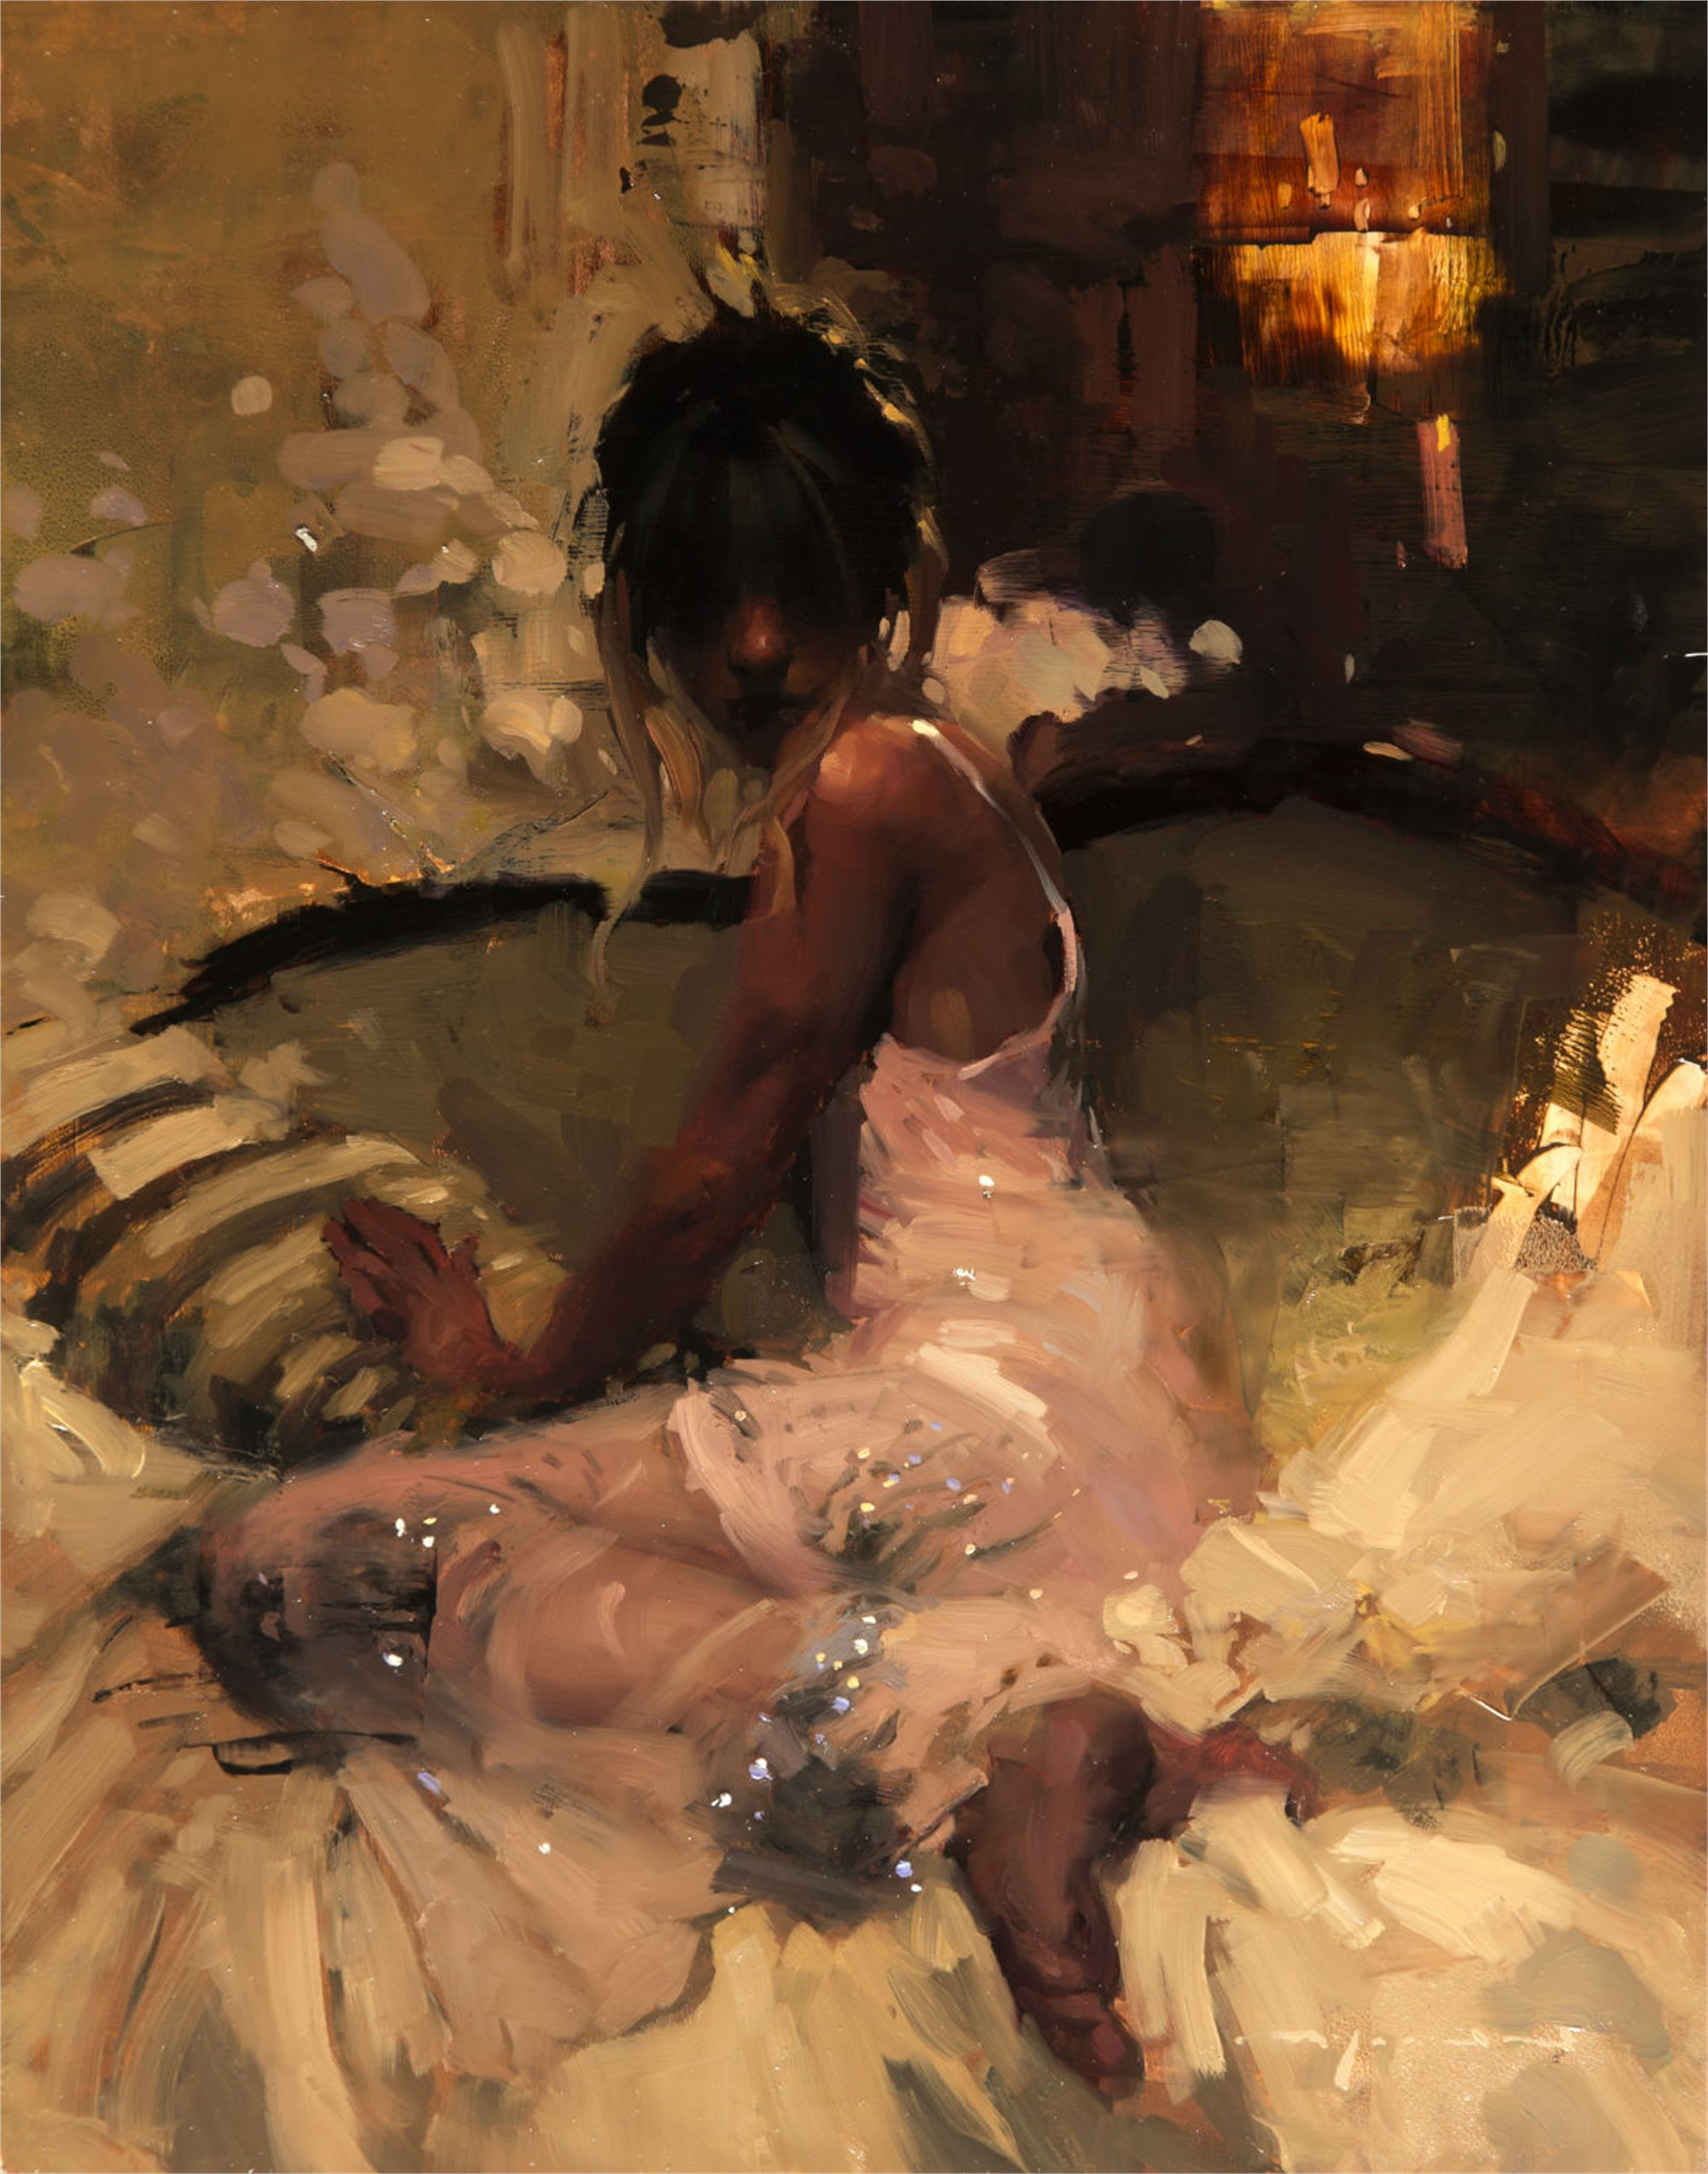 Interlude by Jeremy Mann